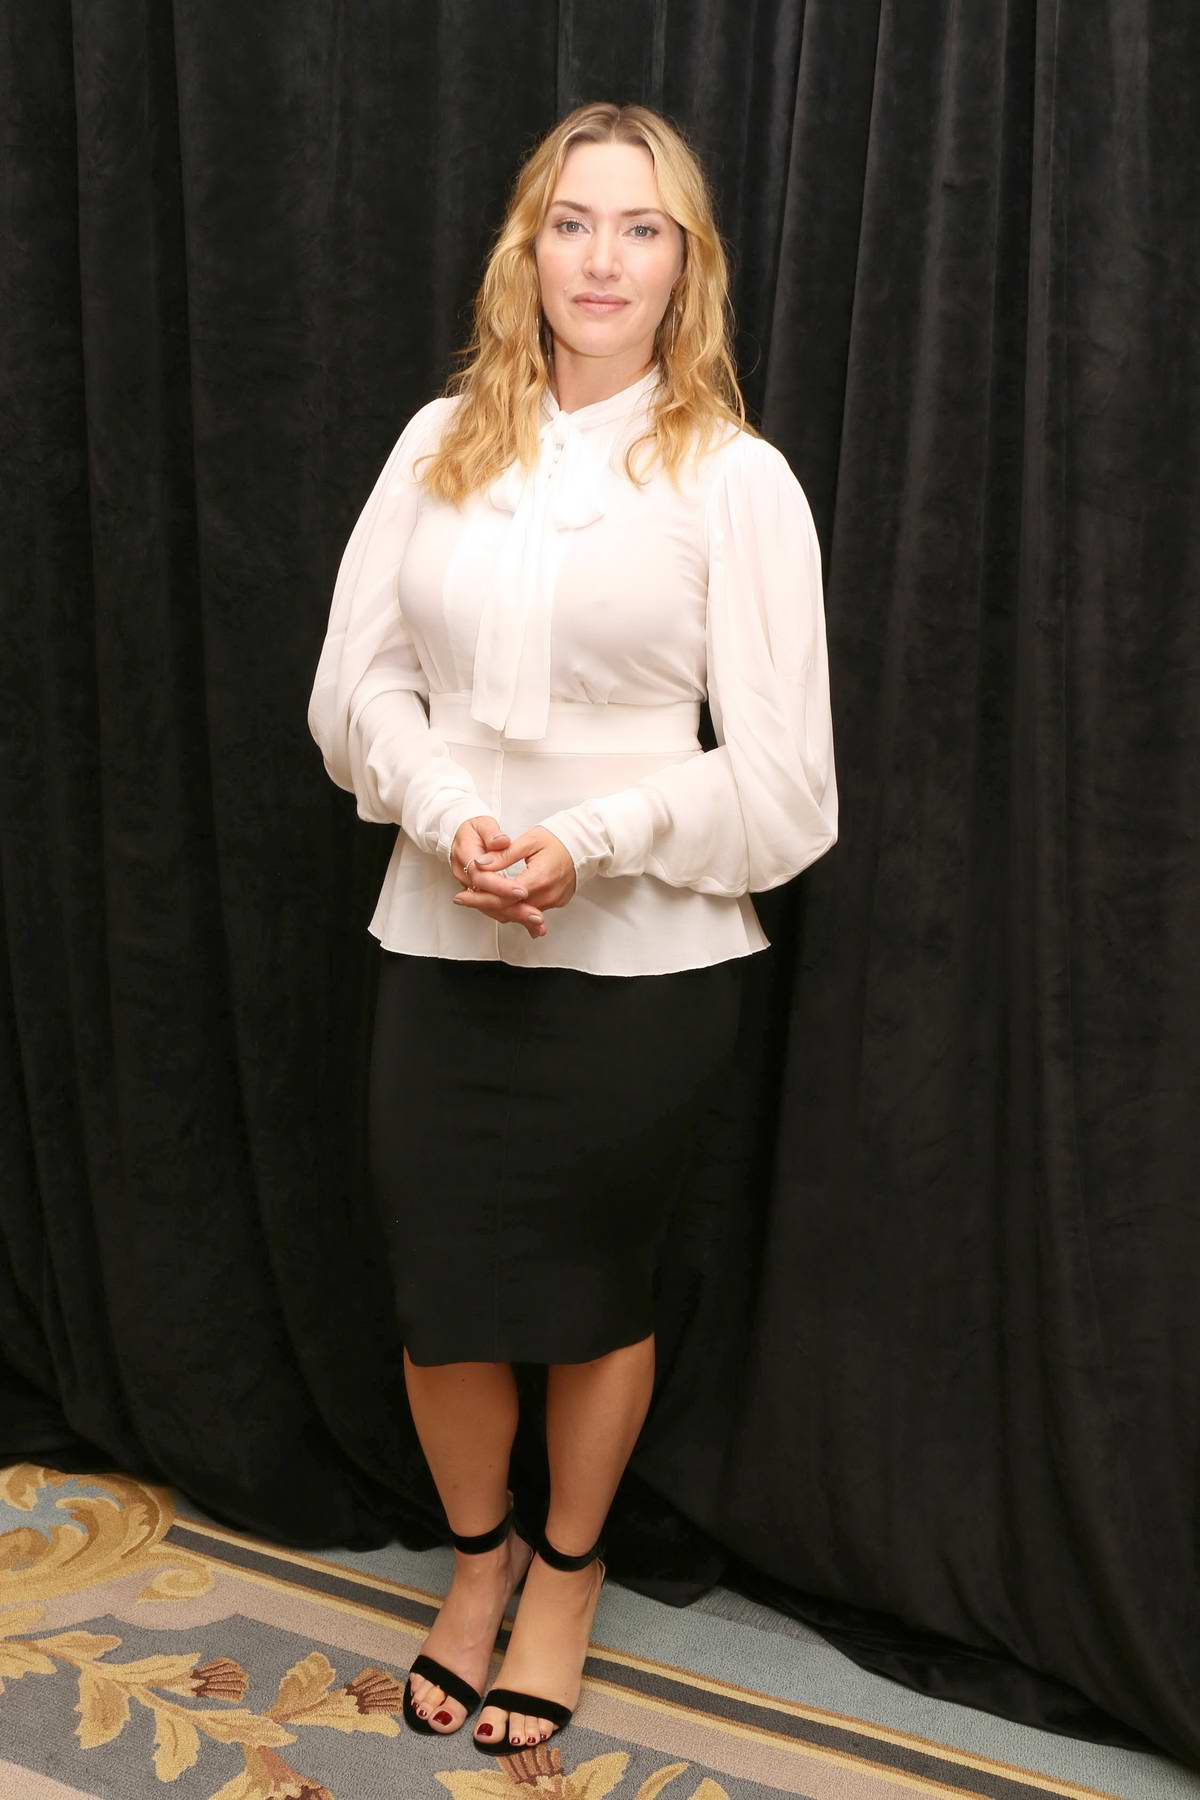 Kate Winslet at the press conference for Wonder Wheel at the the Ritz Carlton Central Park South Hotel in New York